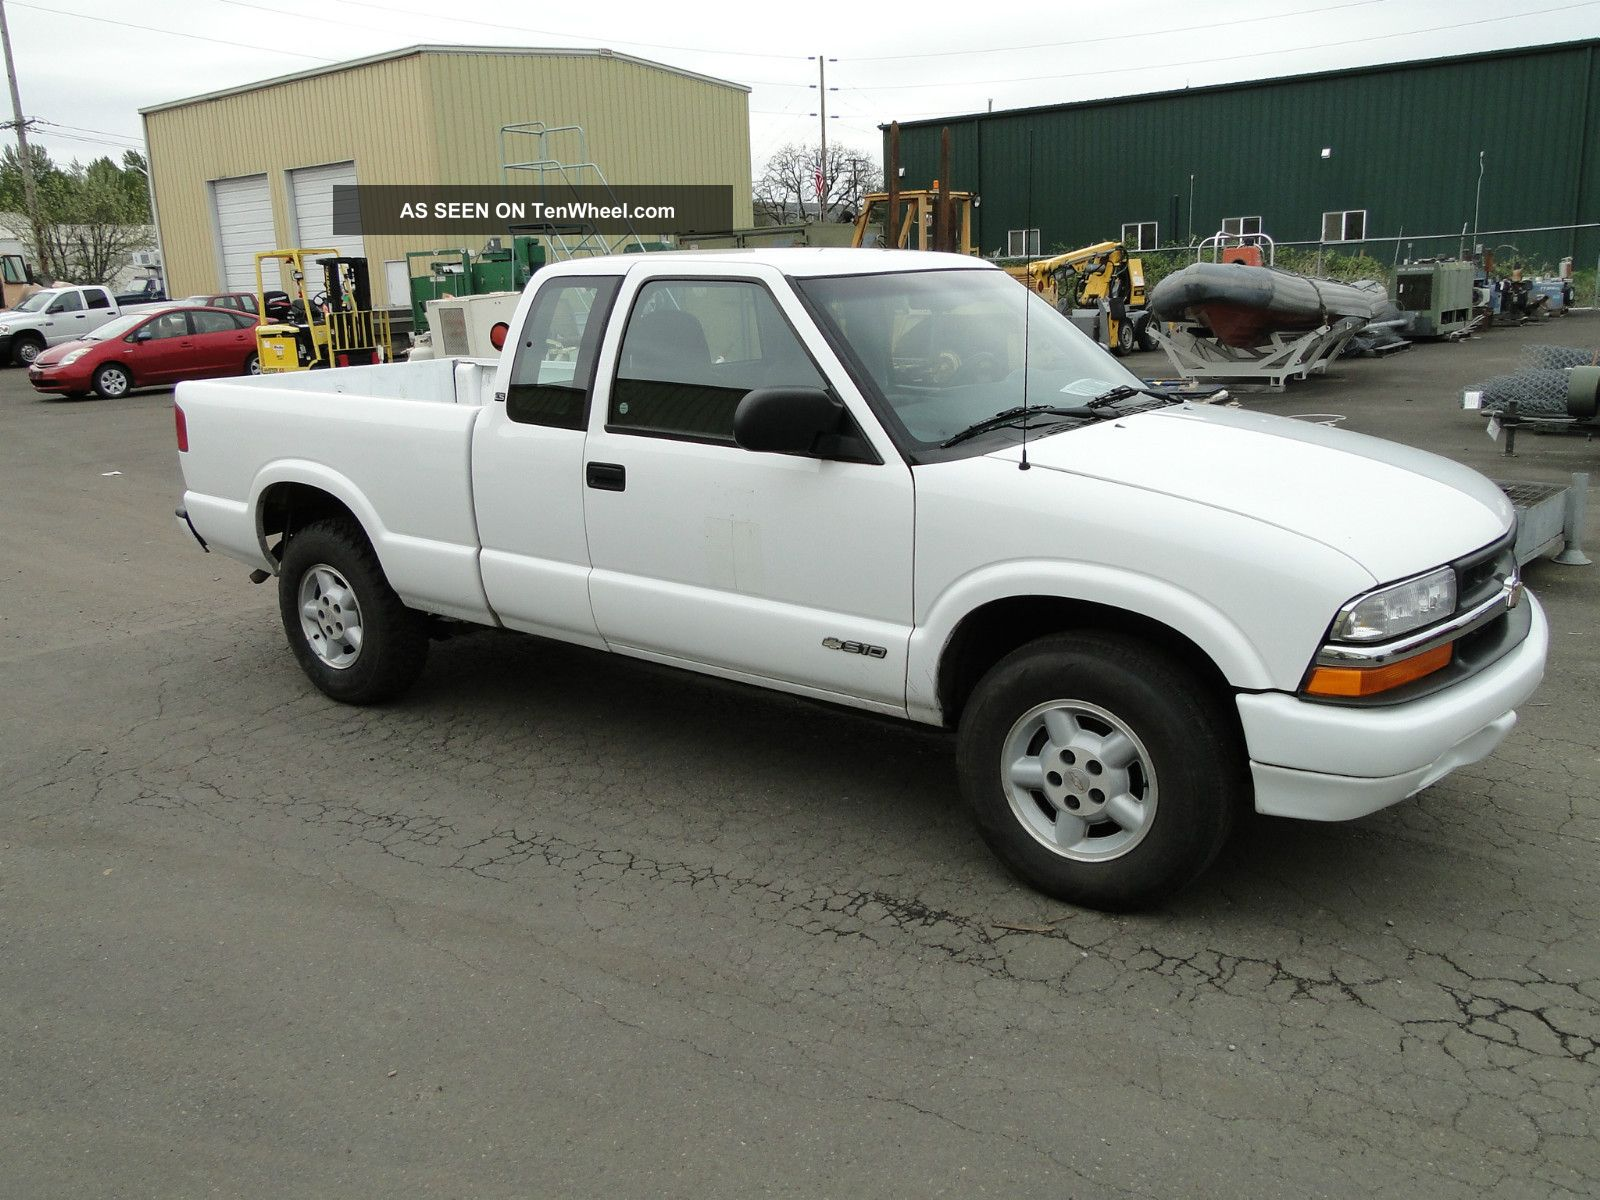 Cars chevrolet s-10 pickup 2001